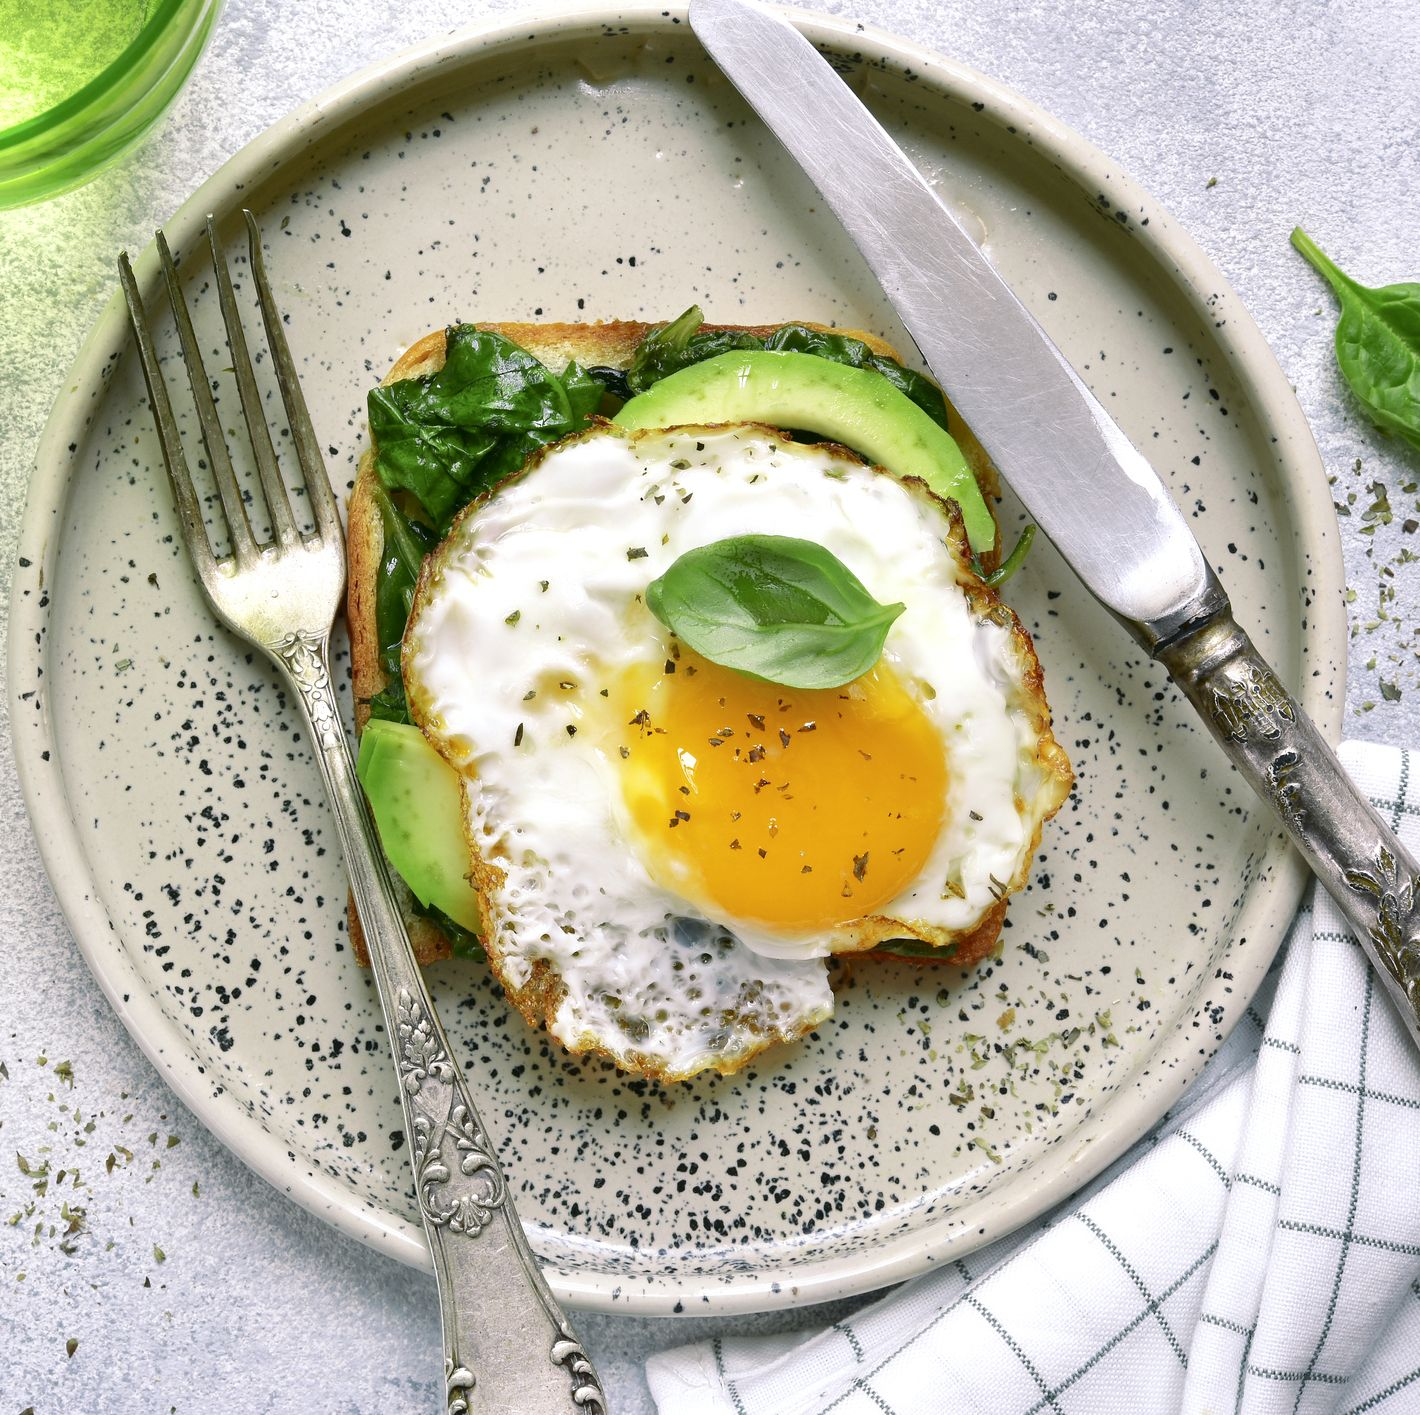 Toast with avocado slices, sauteed spinach and fried egg